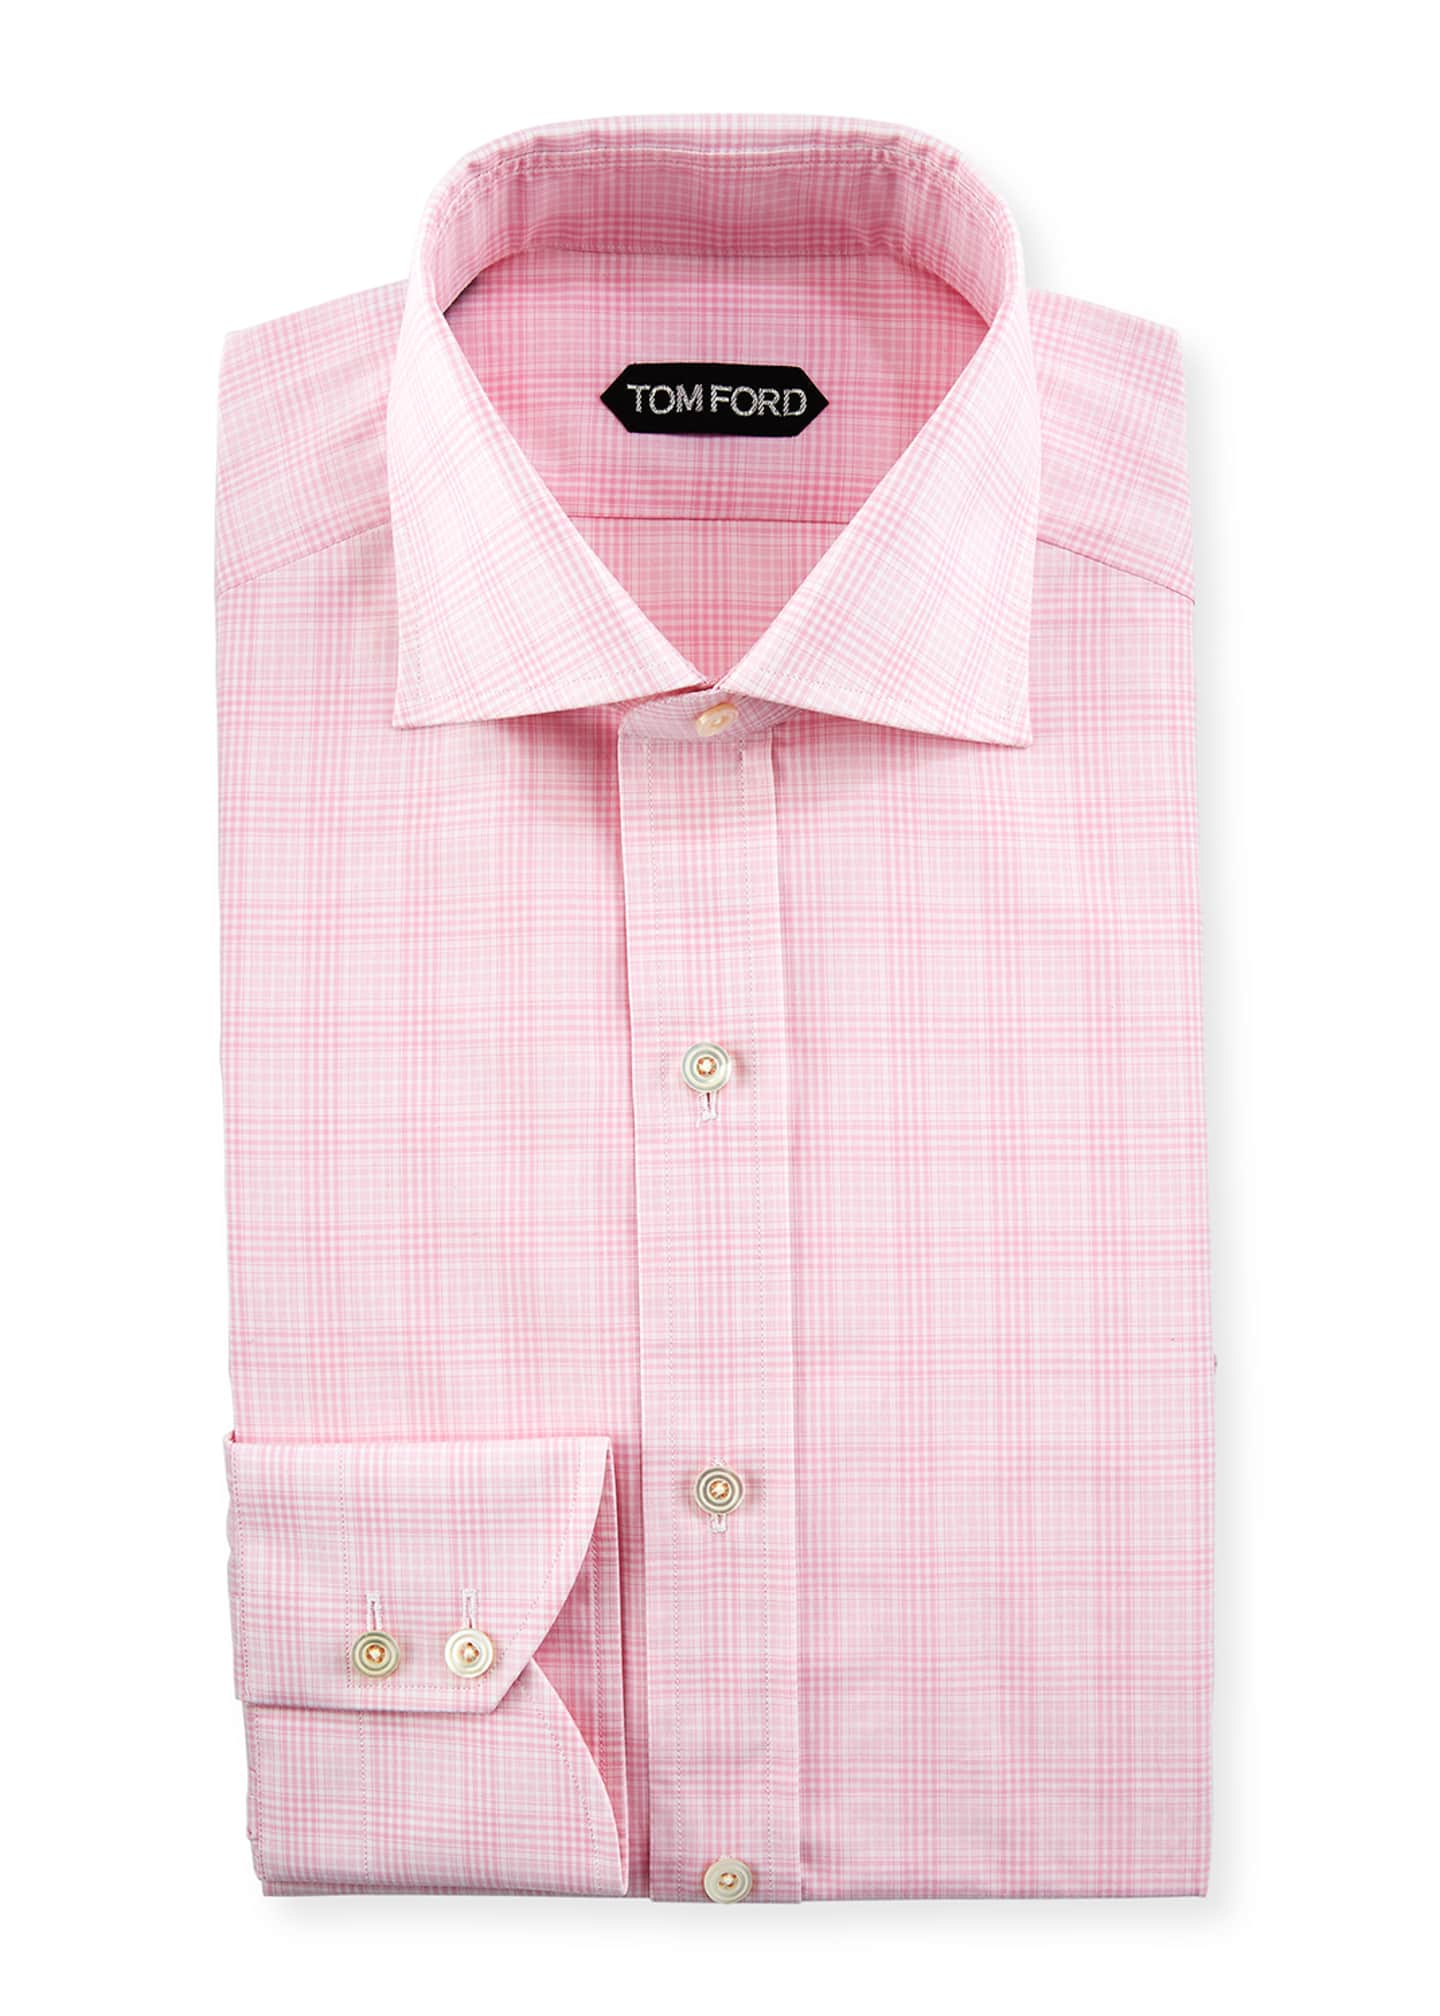 TOM FORD Compressed Plaid Cotton Dress Shirt